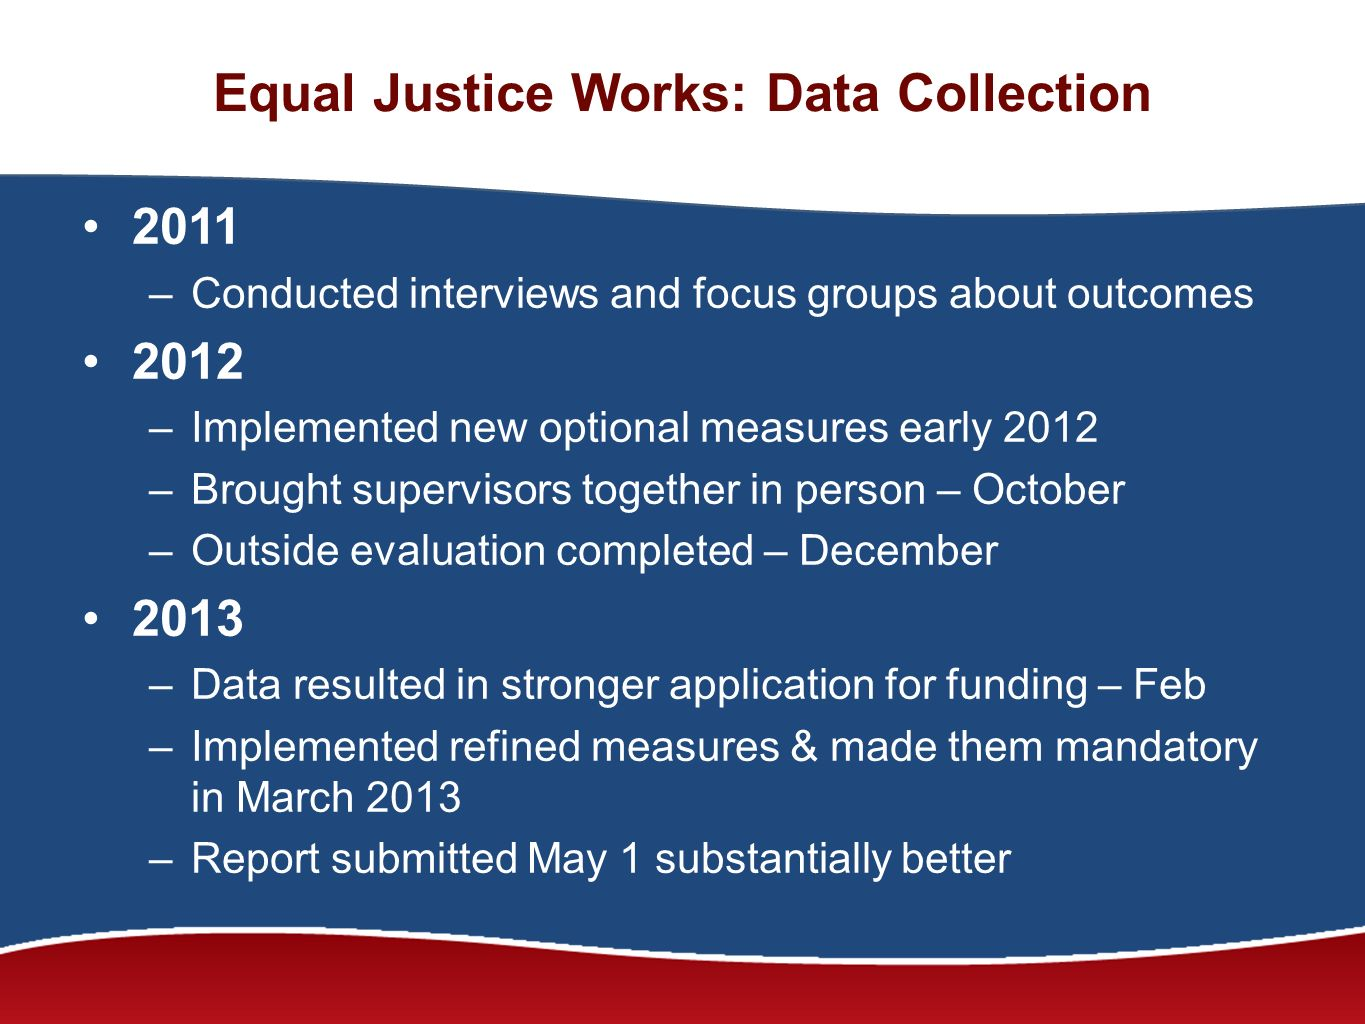 Equal Justice Works: Data Collection 2011 –Conducted interviews and focus groups about outcomes 2012 –Implemented new optional measures early 2012 –Brought supervisors together in person – October –Outside evaluation completed – December 2013 –Data resulted in stronger application for funding – Feb –Implemented refined measures & made them mandatory in March 2013 –Report submitted May 1 substantially better